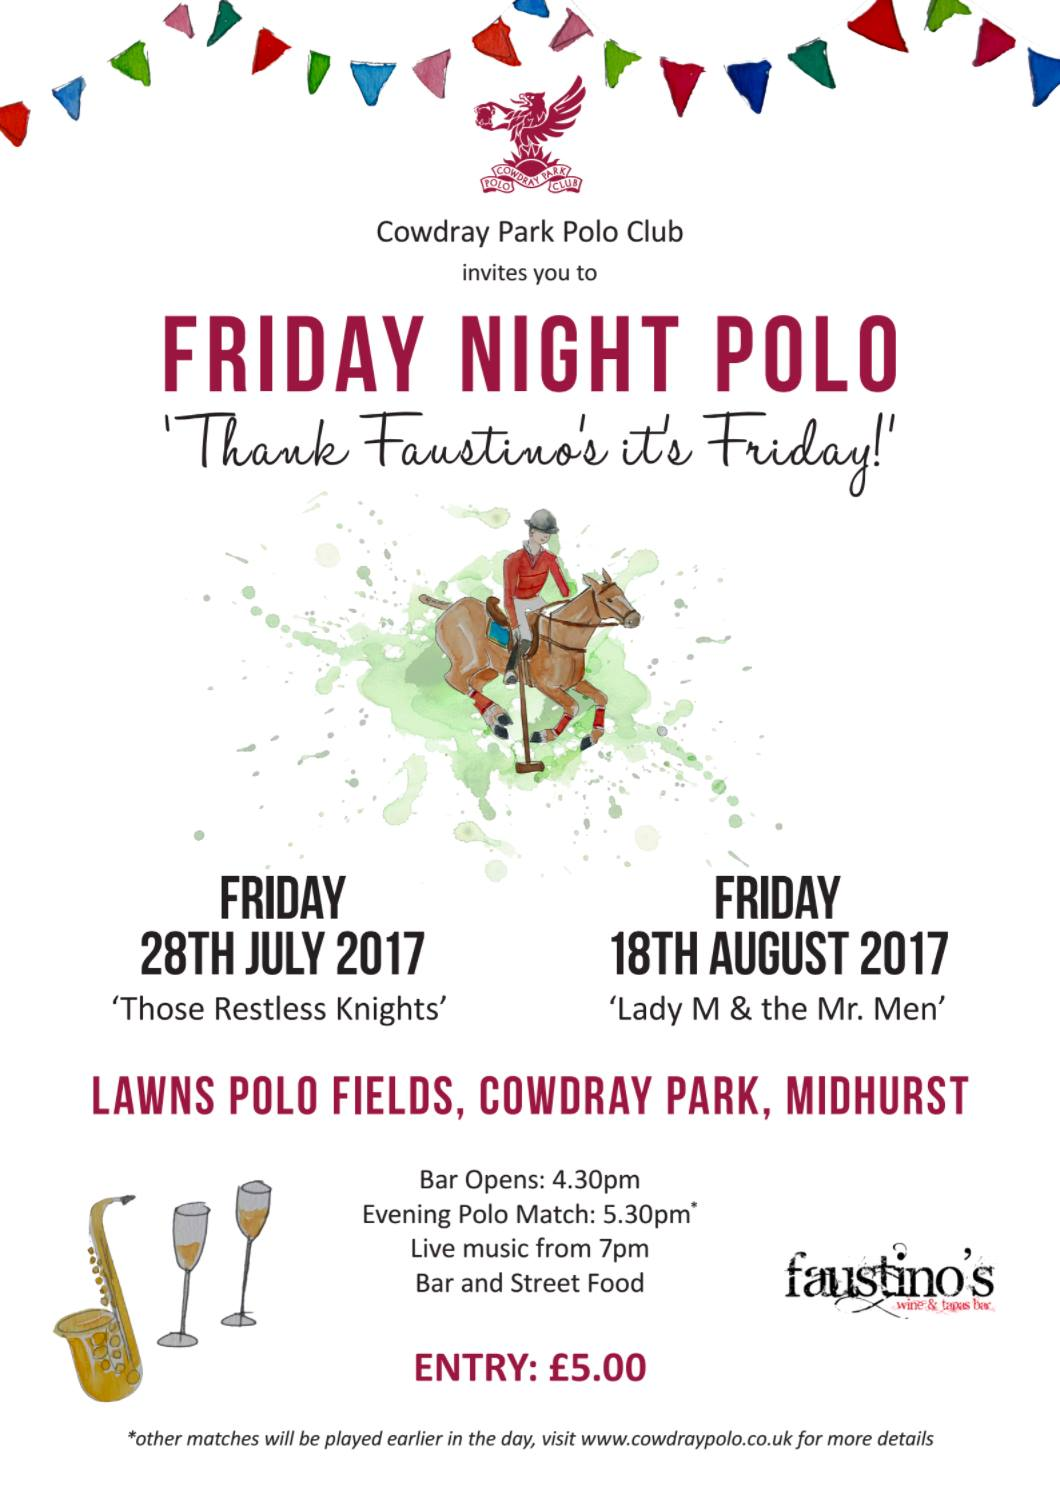 Friday Night Polo - 'Those Restless Knights'